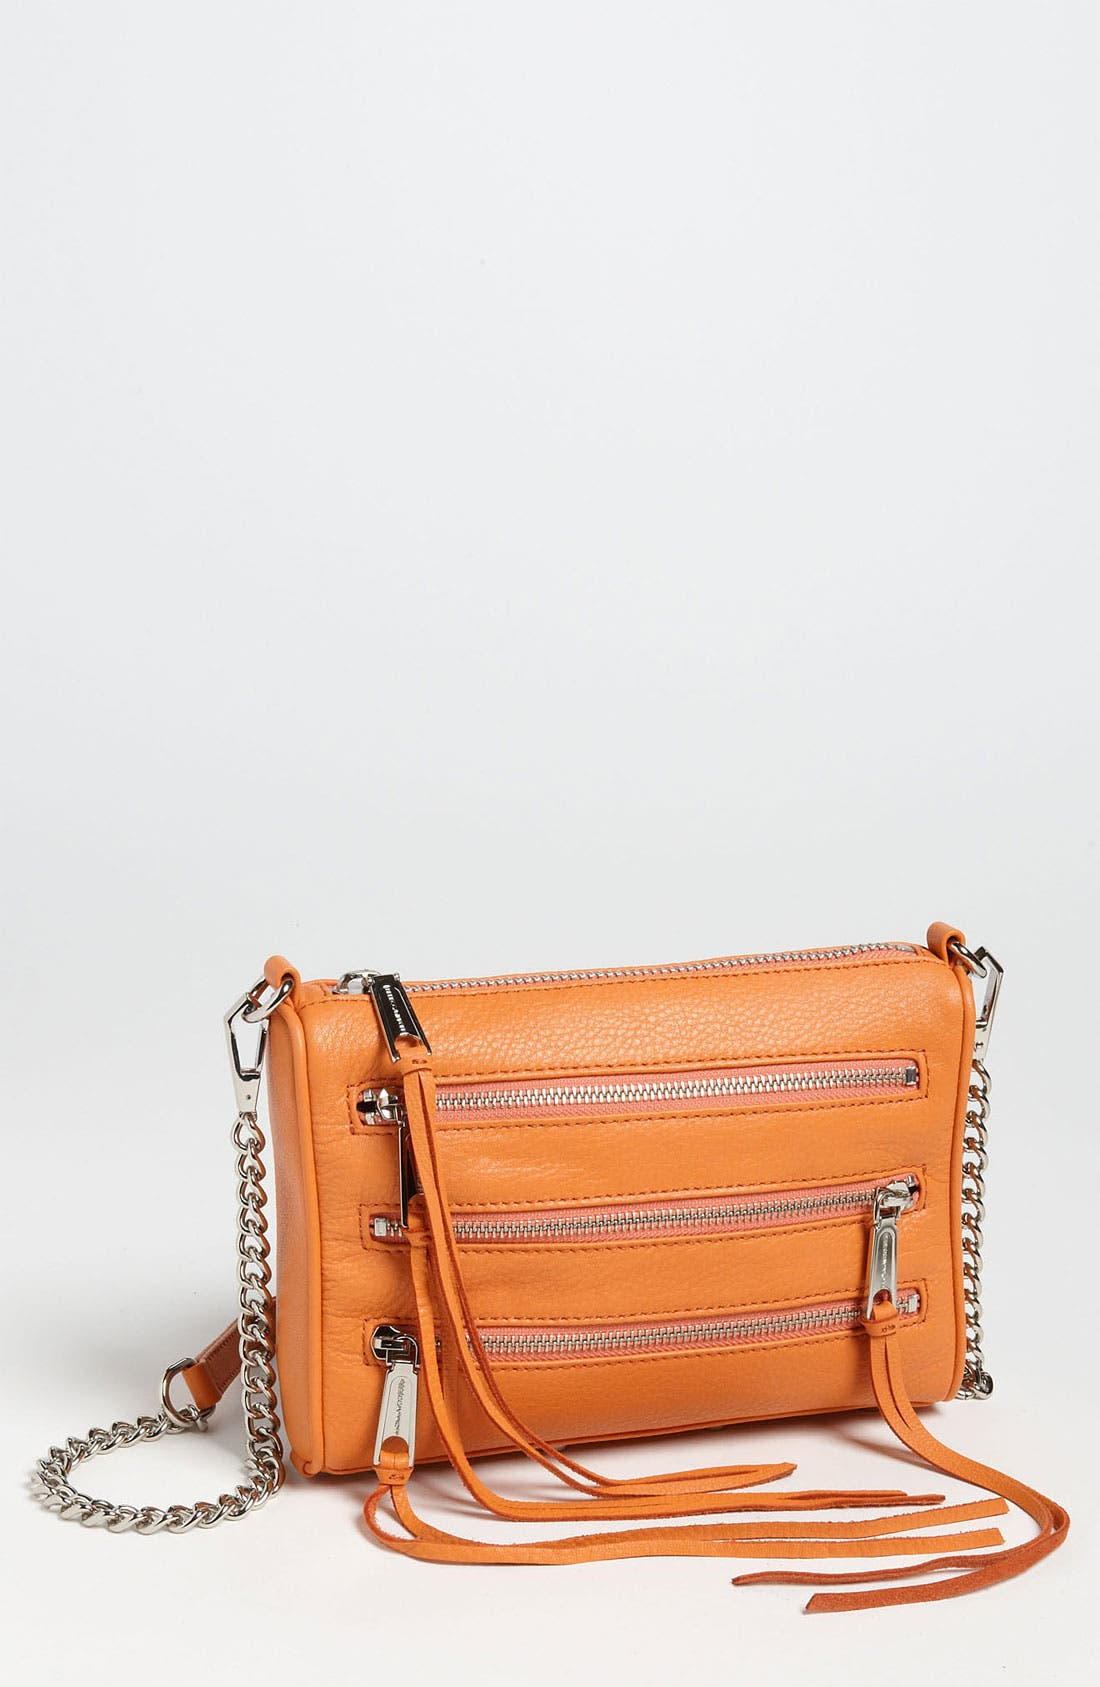 Alternate Image 1 Selected - Rebecca Minkoff 'Mini 5 Zip' Convertible Crossbody Bag